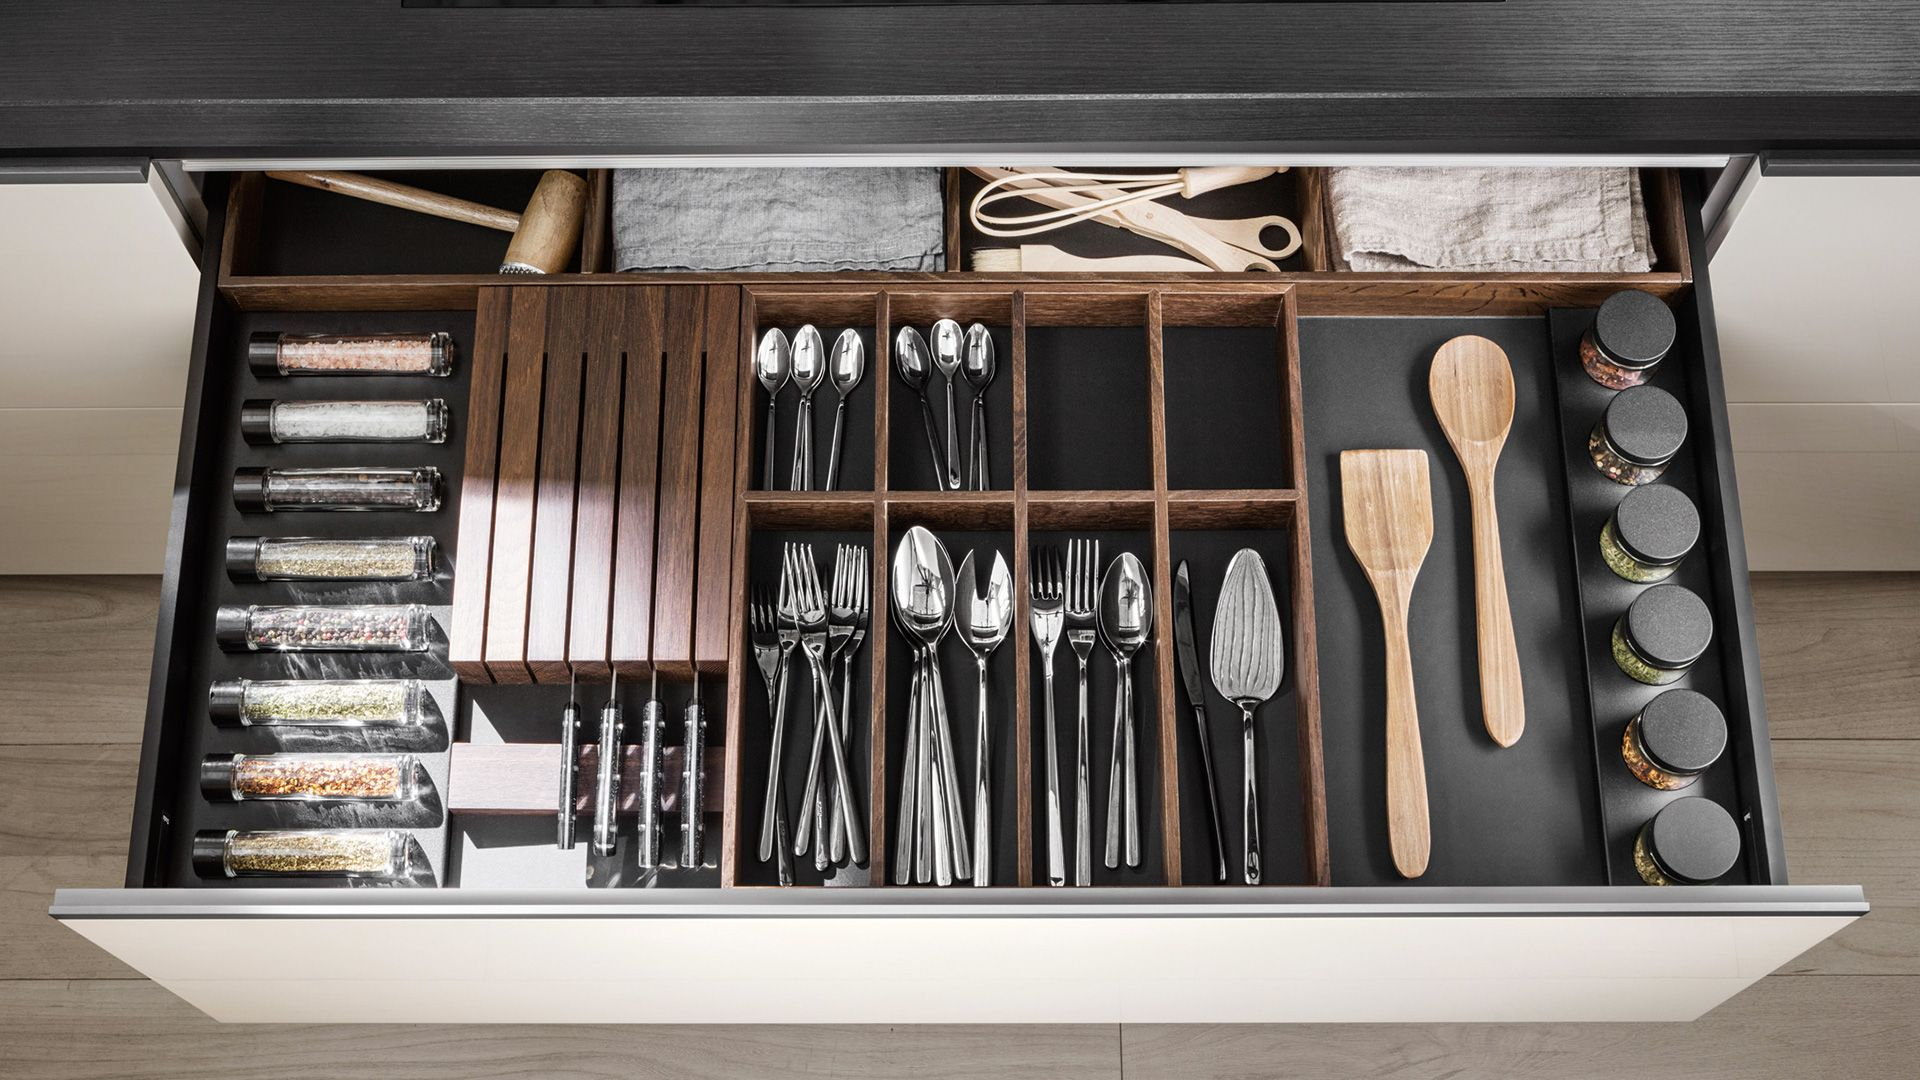 Smoked oak drawers and containers accessories Accessories - Dada